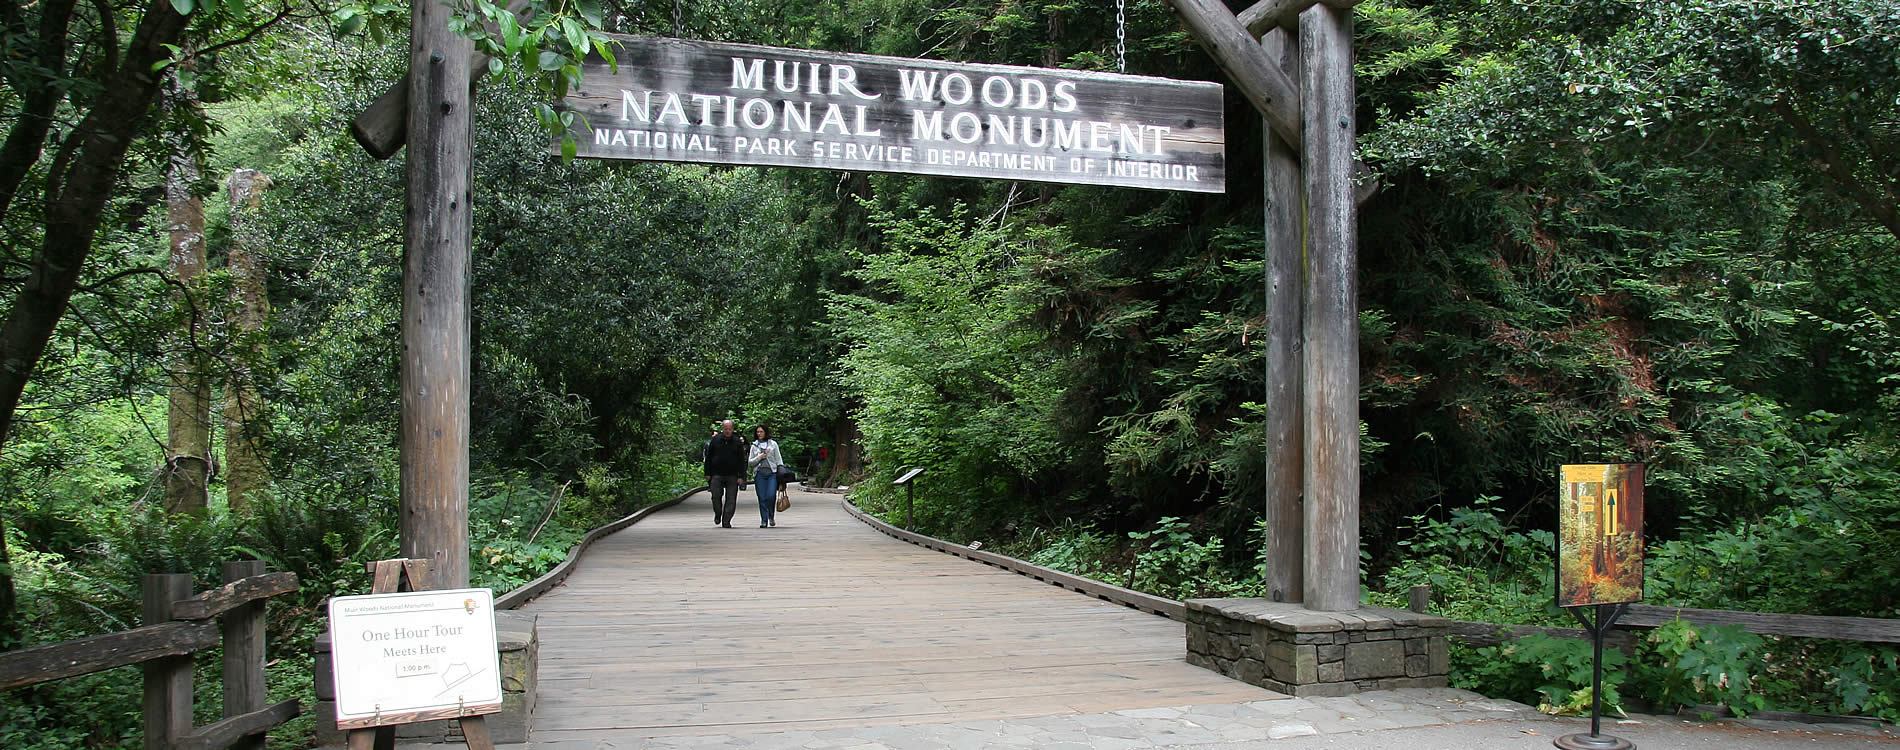 hike muir woods national monument